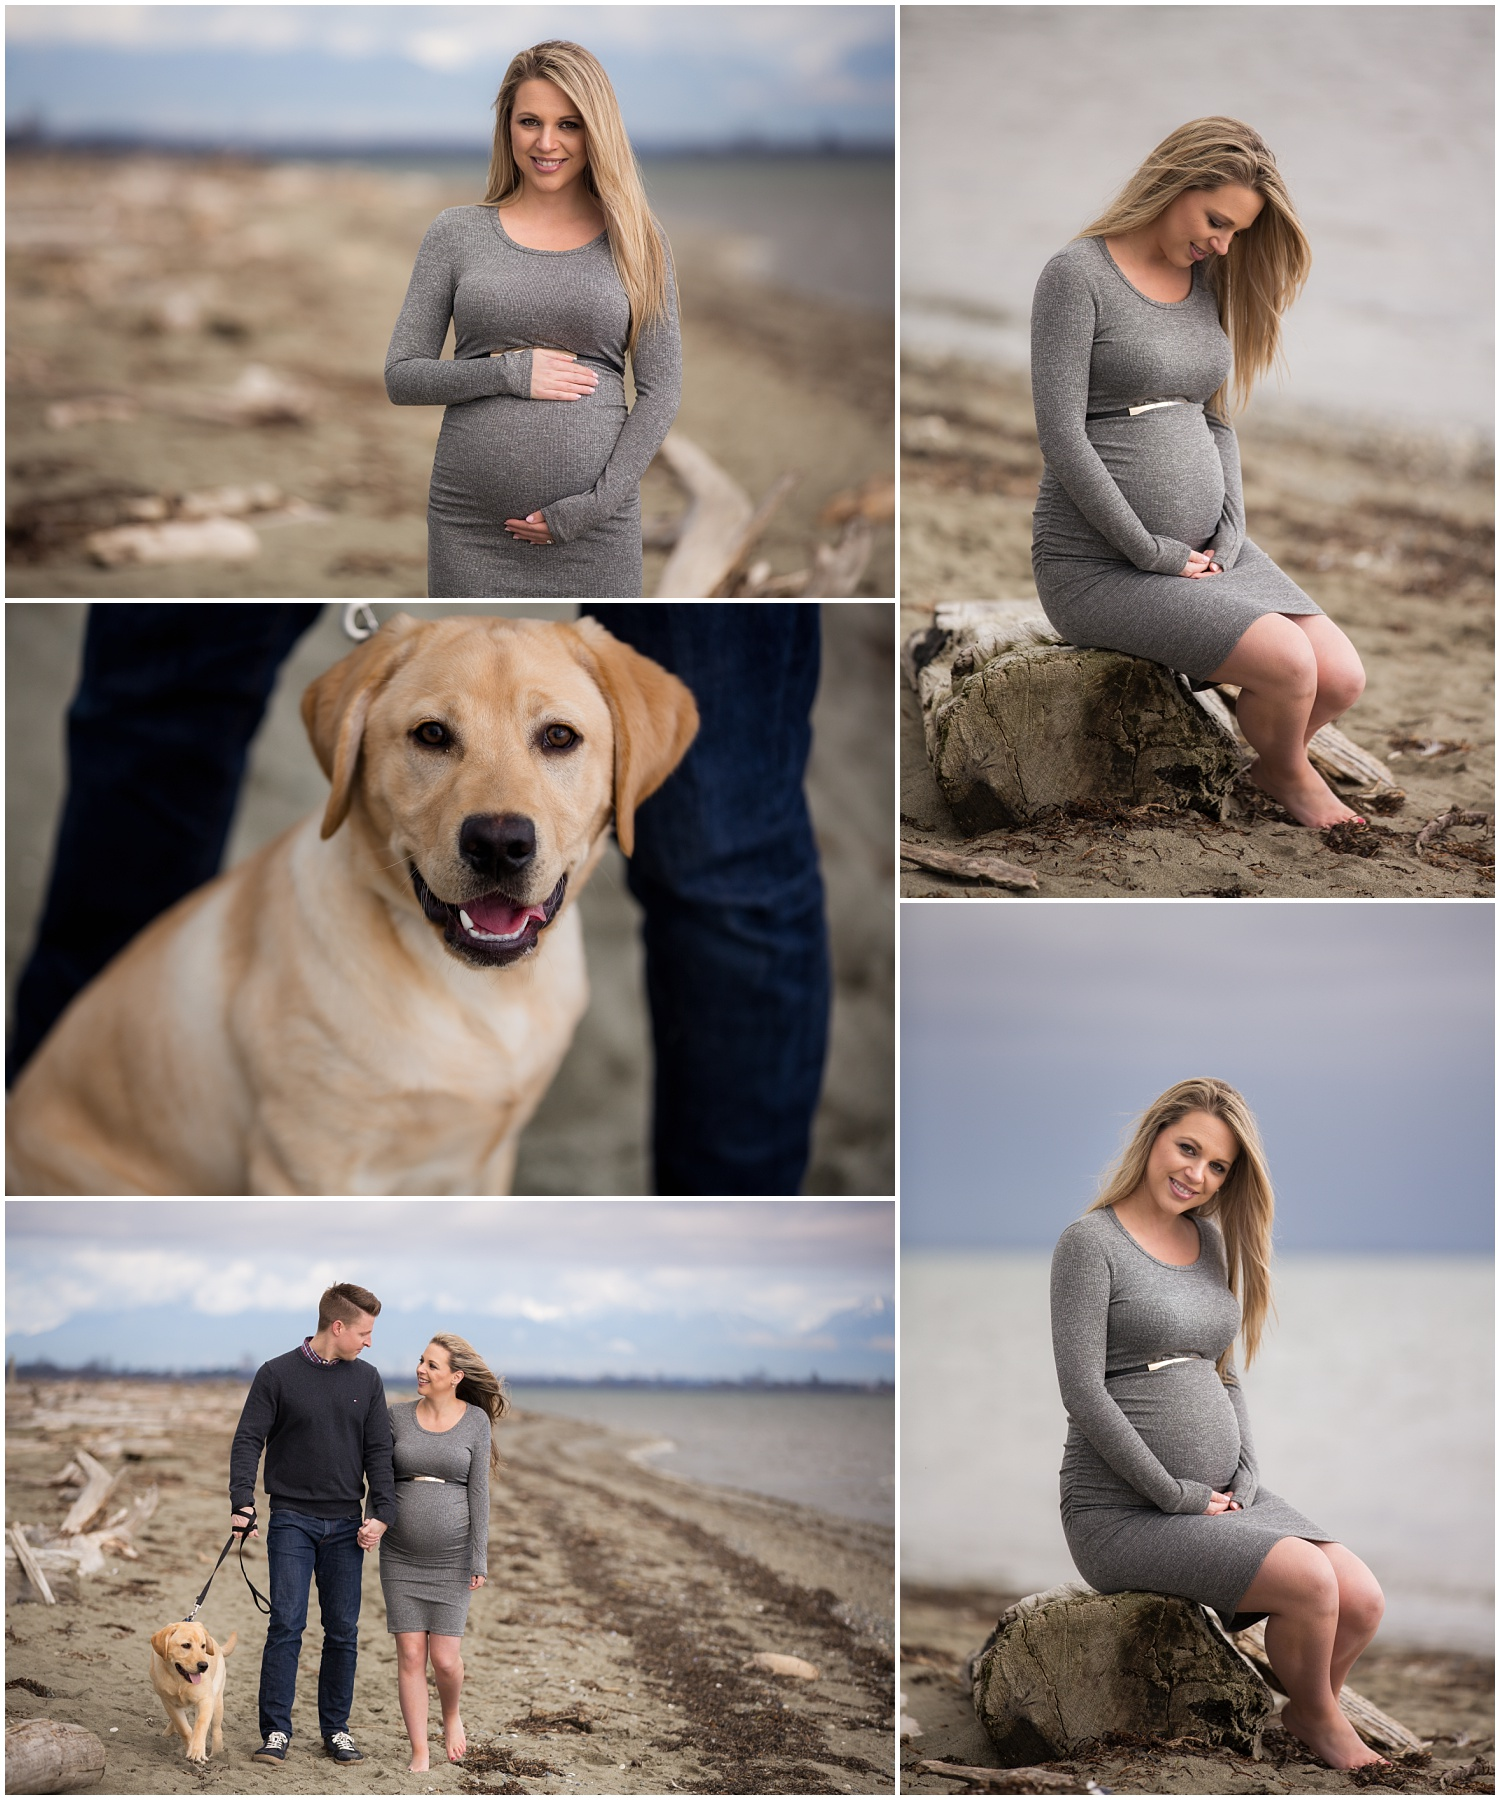 Amazing Day Photography - Tsawwasseen Maternity Session - Centennial Beach Maternity Session - Langley Maternity Session (5).jpg